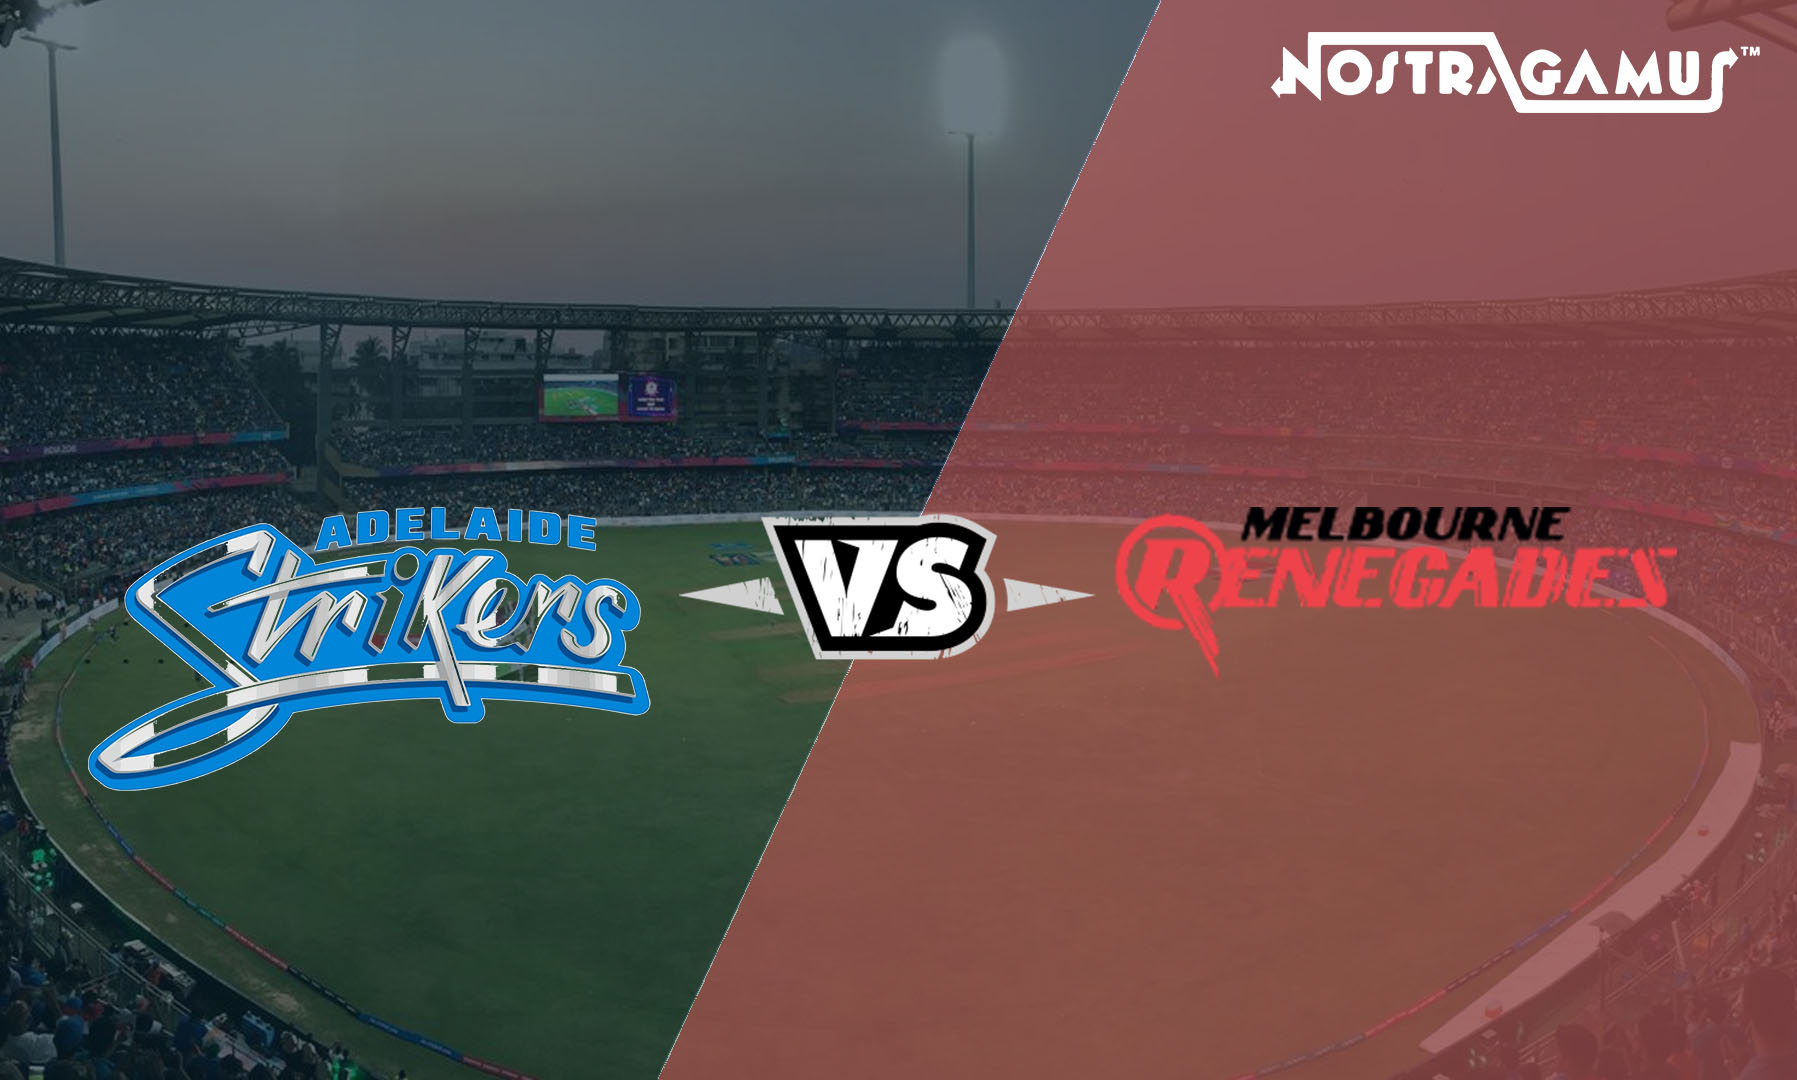 BBL 2019 Match Prediction: Melbourne Renegades vs Adelaide Strikers